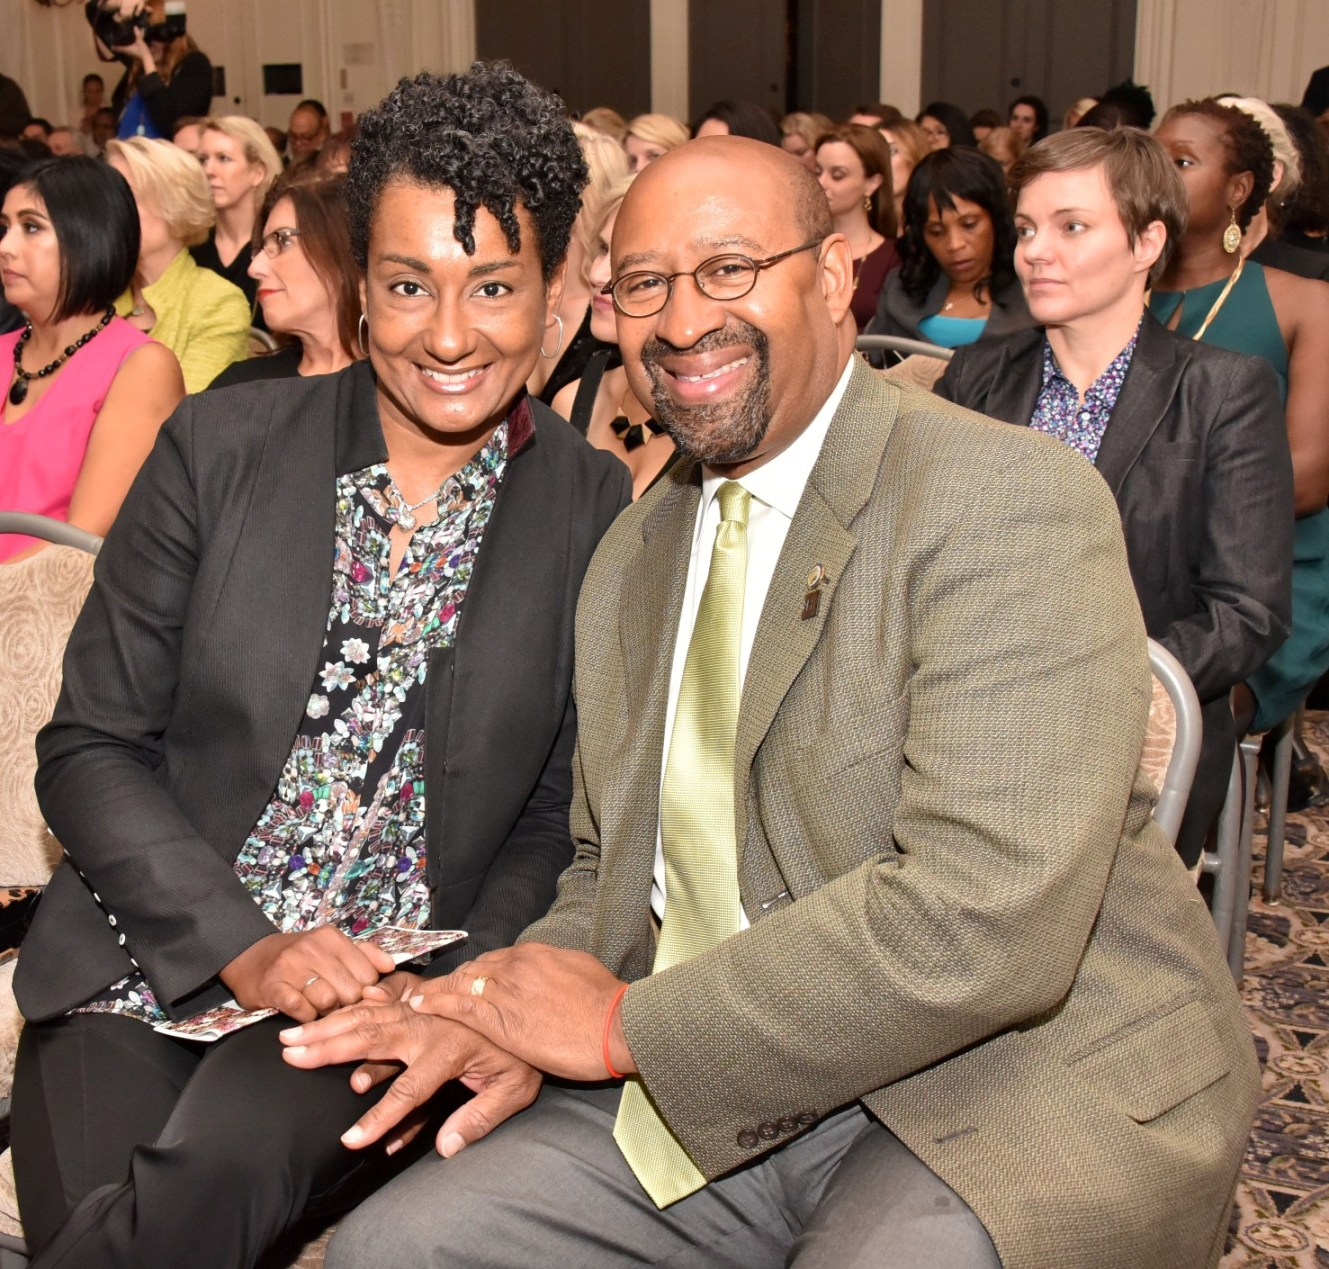 First Lady (and 2011 honoree) Lisa Nutter and her husband Mayor Michael Nutter. (PHOTO: Hugh E. Dillon)